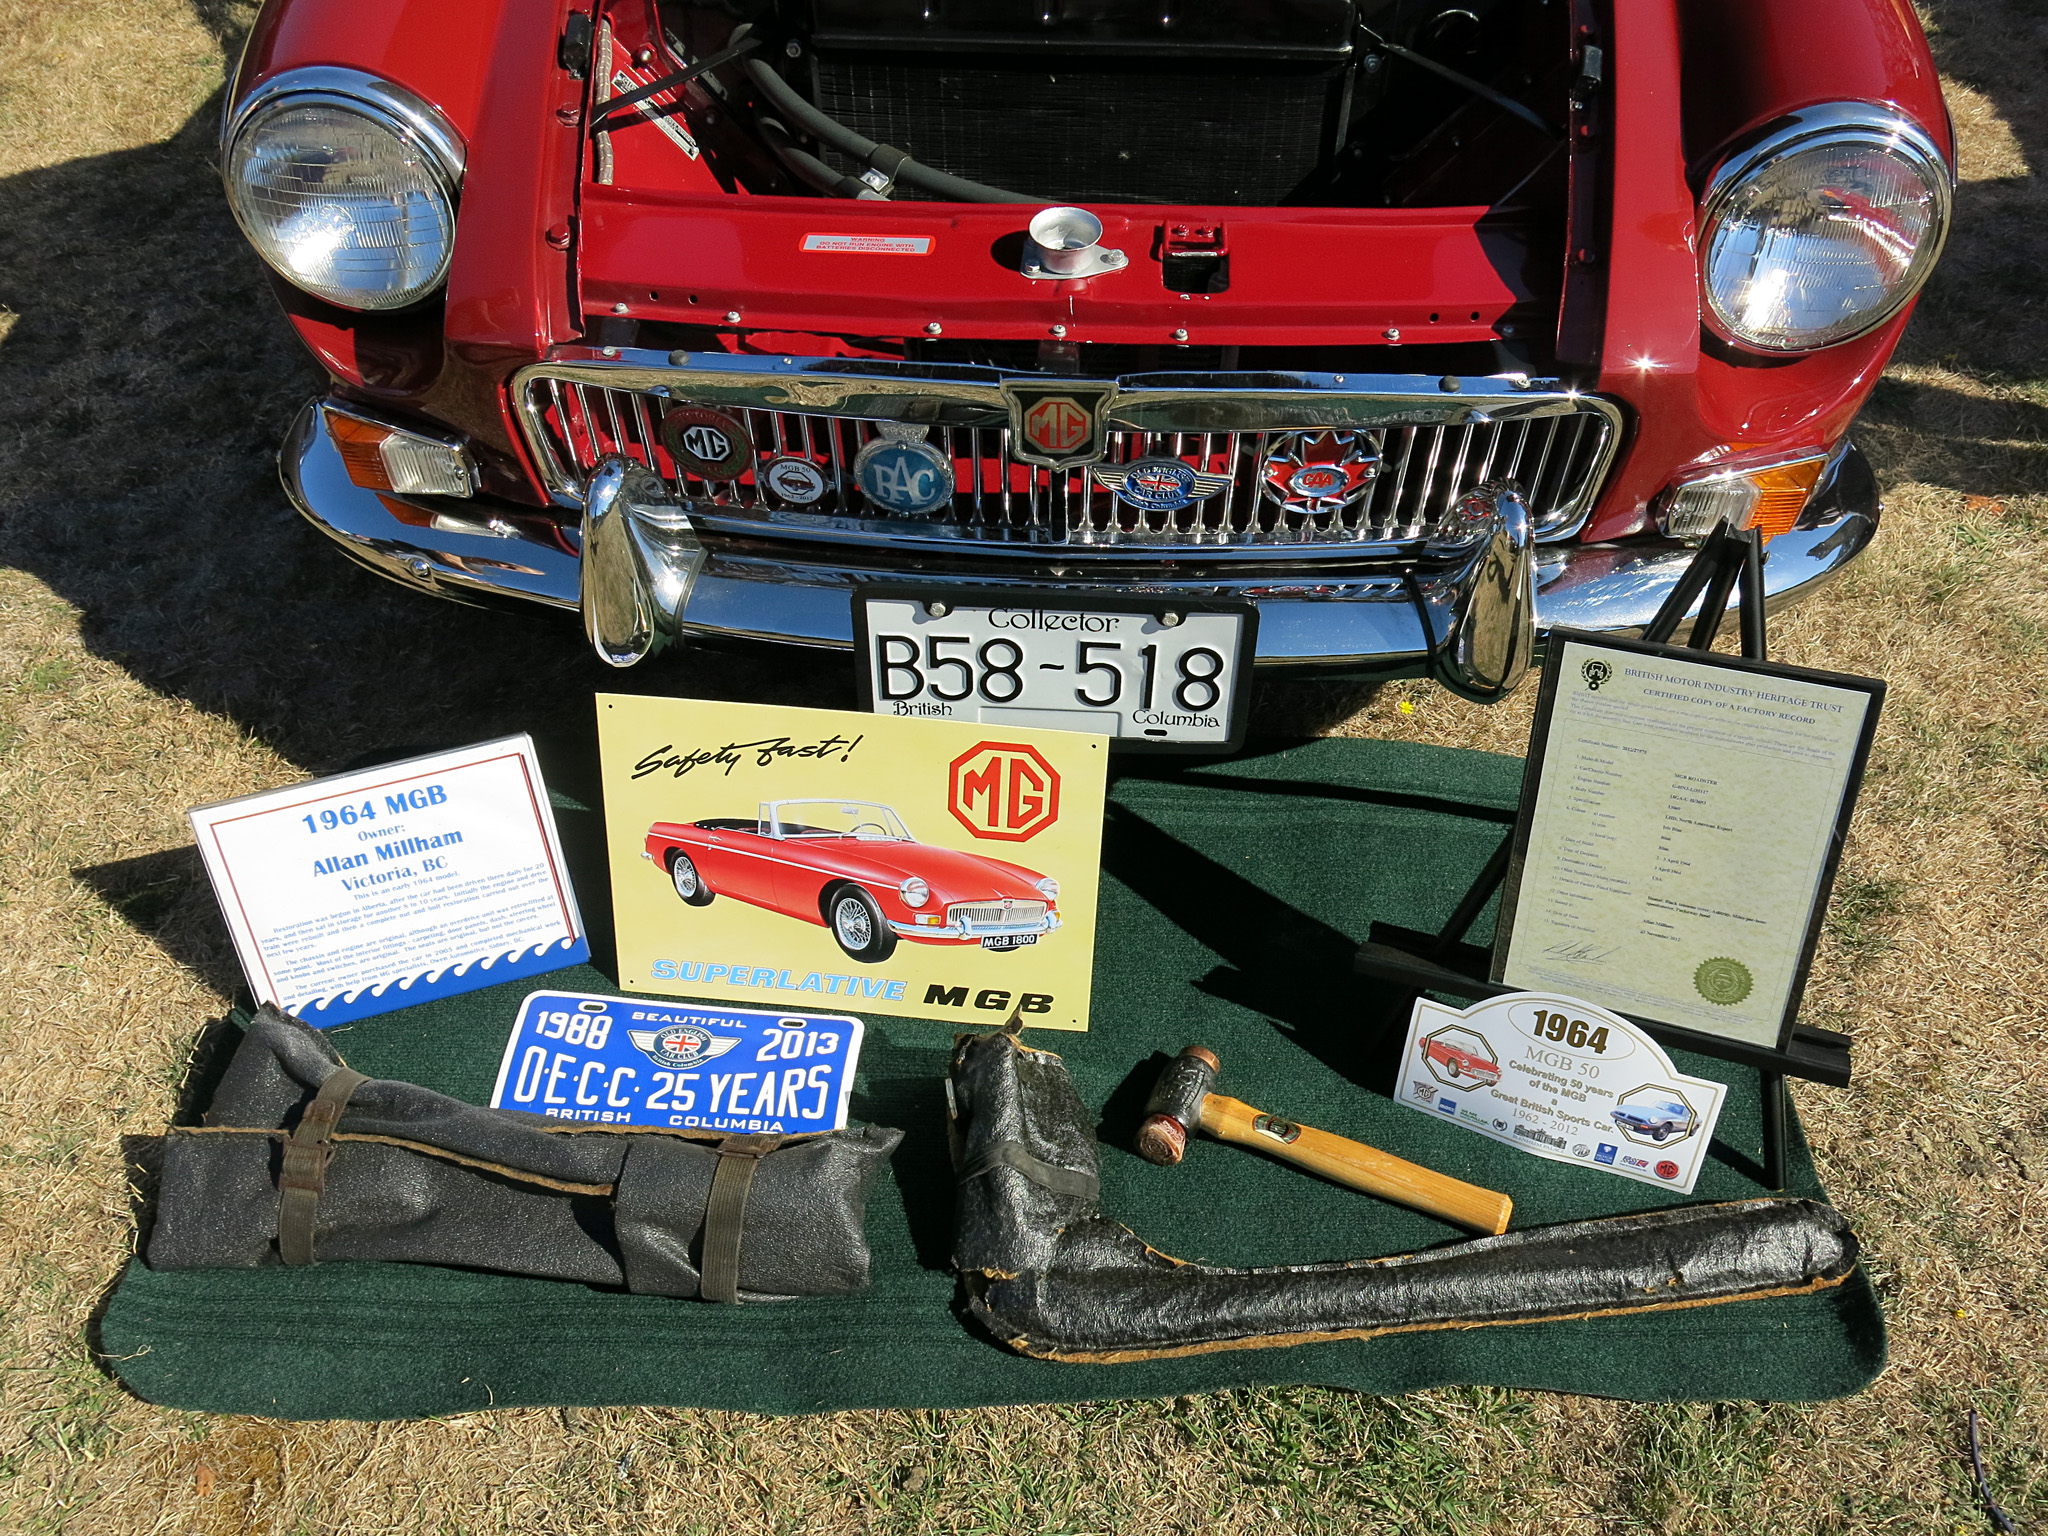 Allan Millham wins our 'award' for best concours spread of the show.